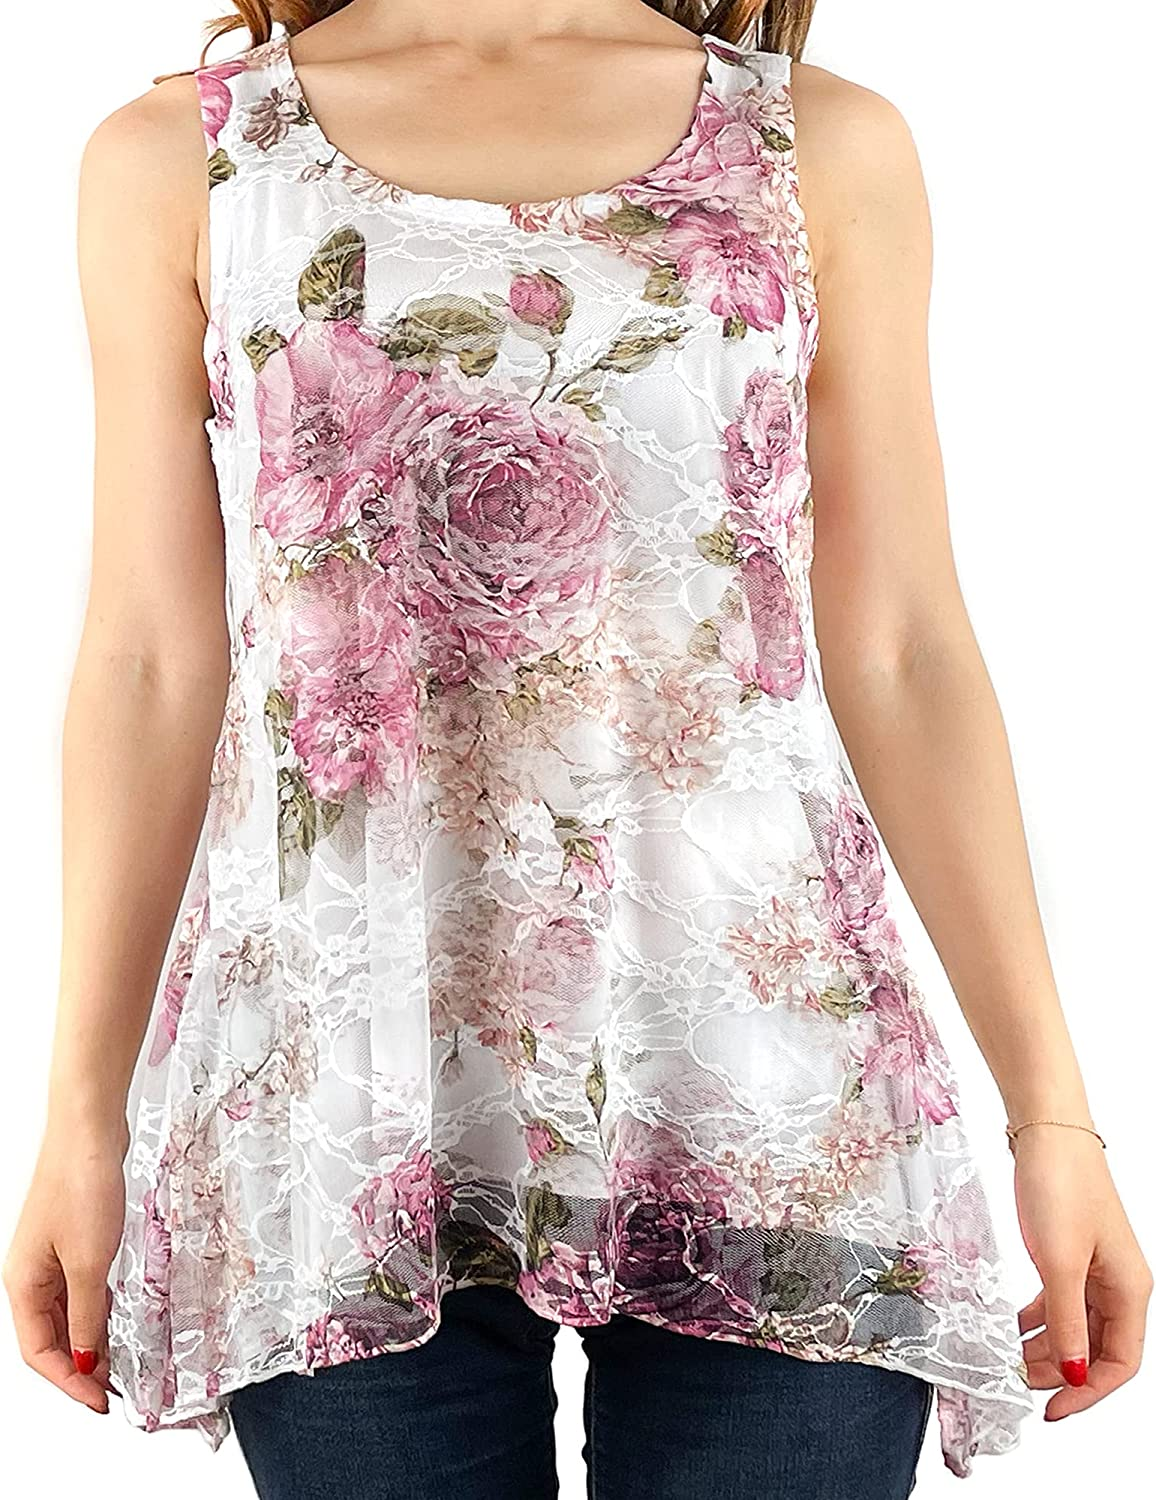 Brittany Black Women's Floral Flowy Sleeveless Blouse Tank Top